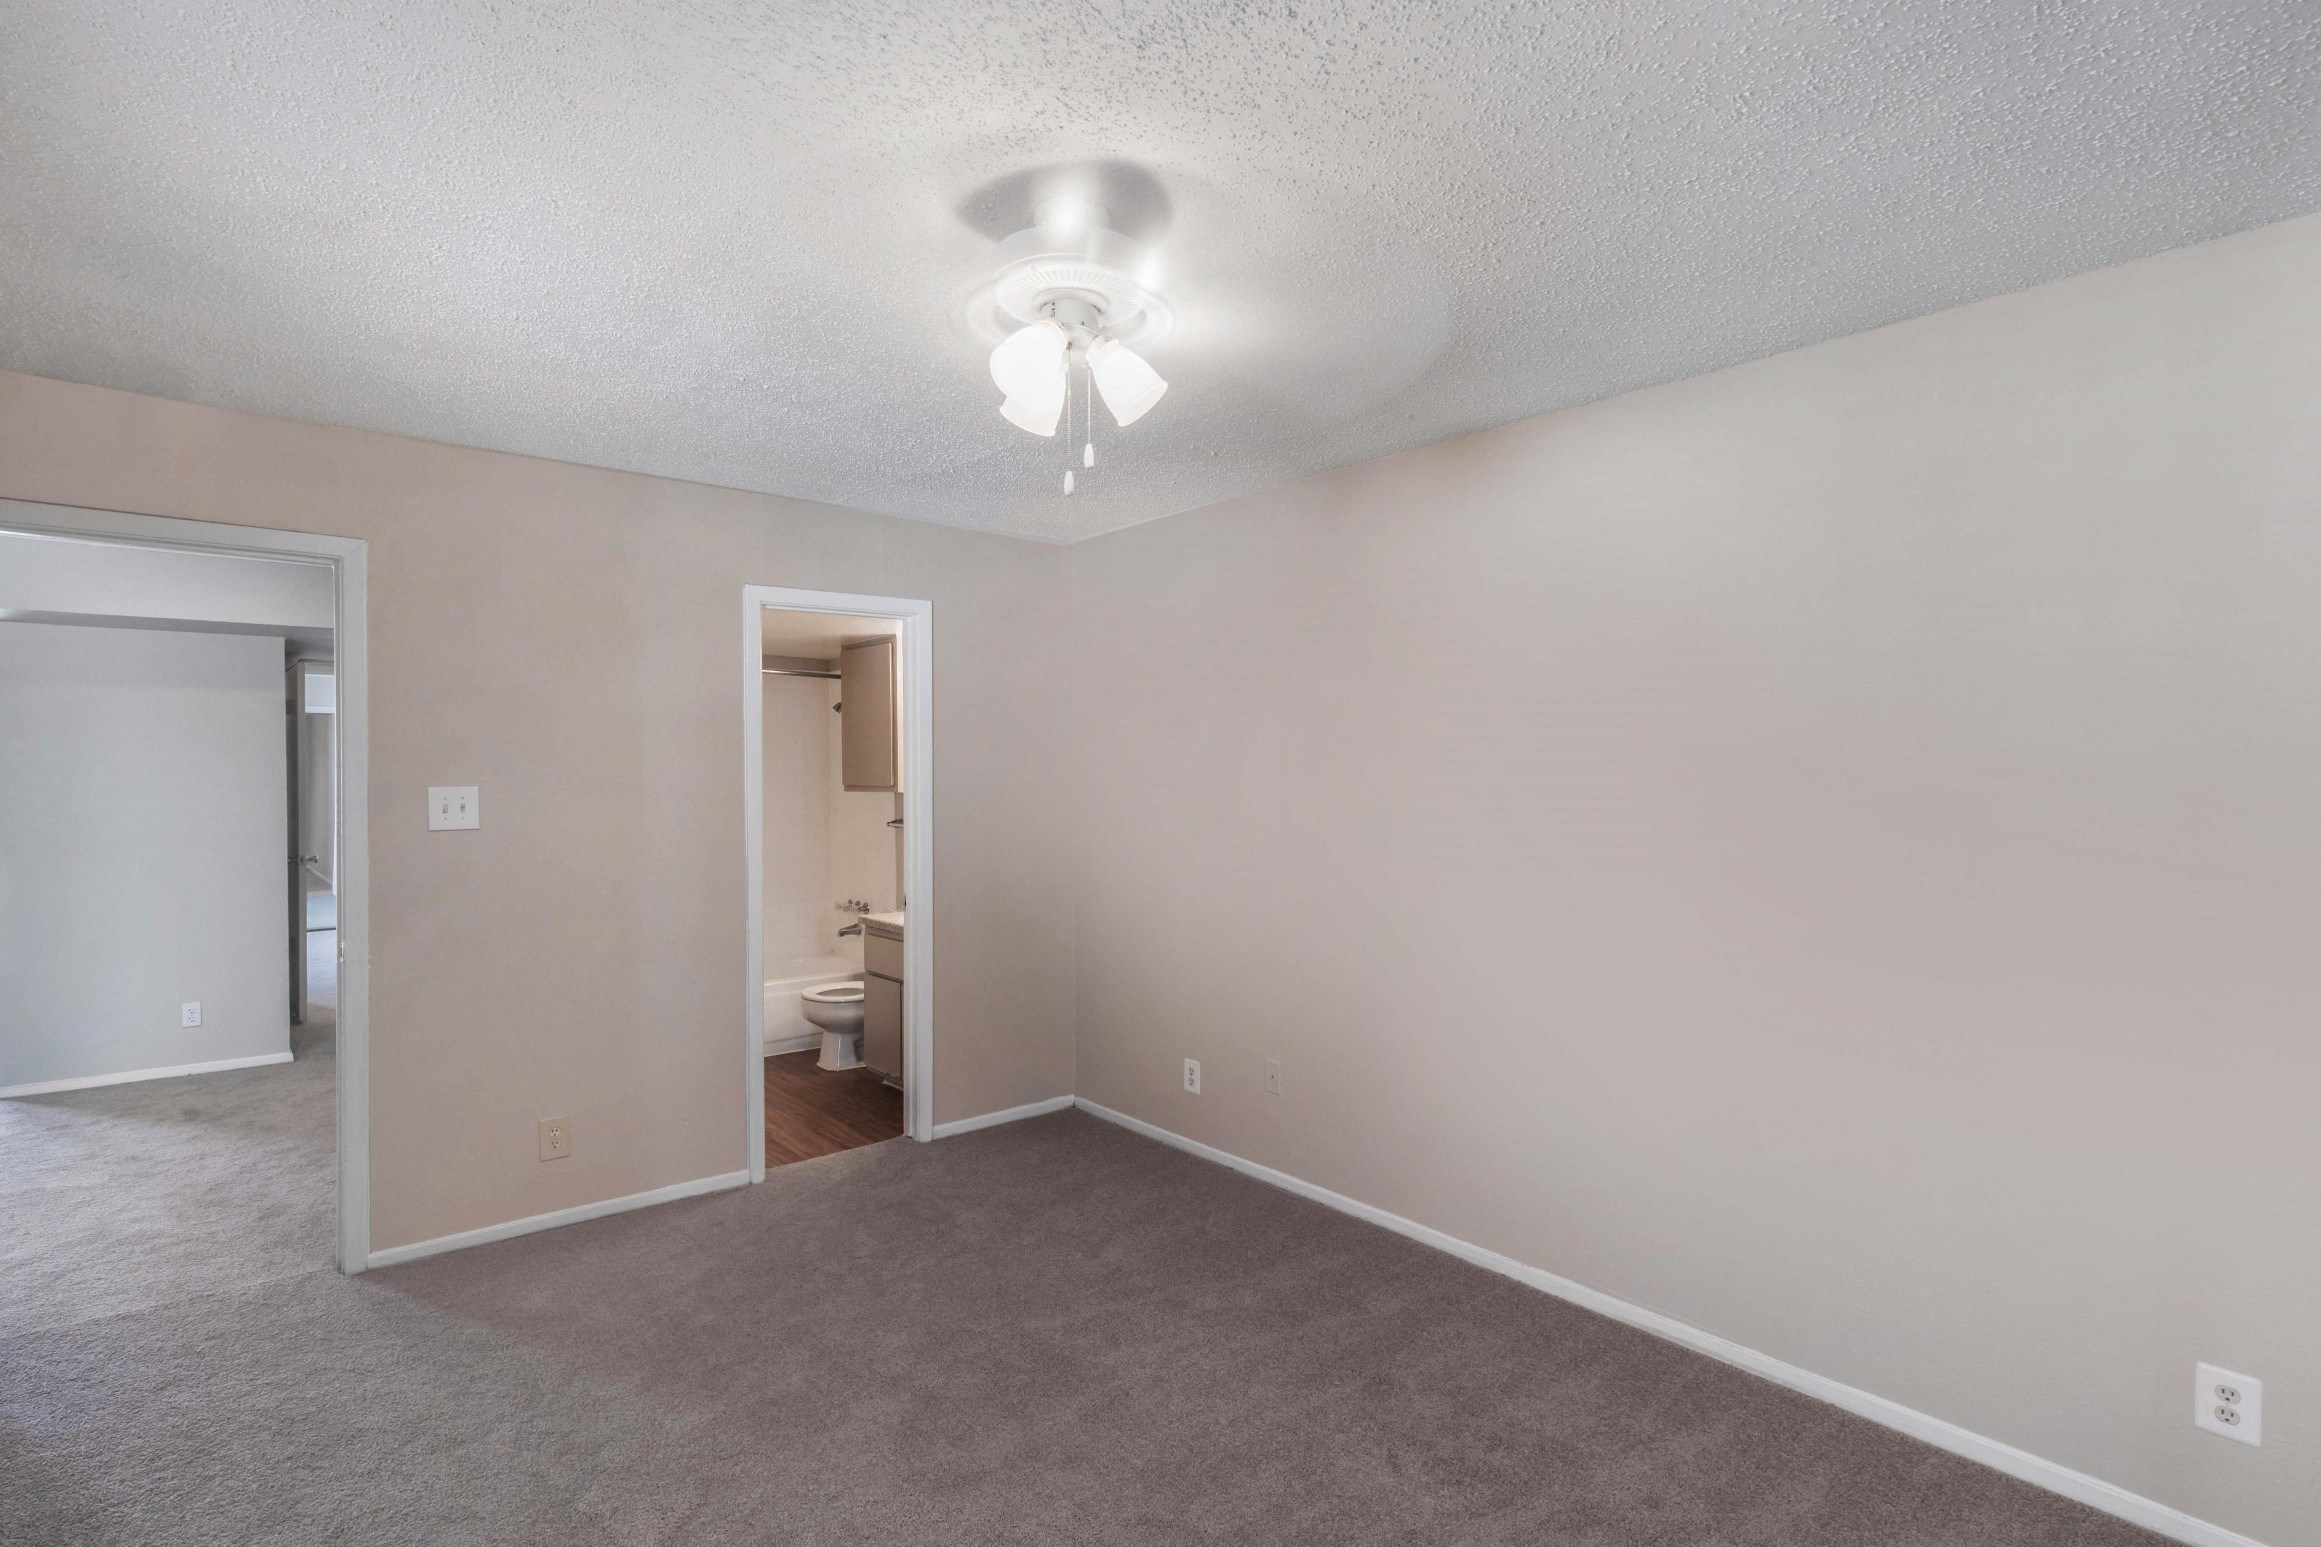 Bedroom with brown wall to wall carpet, ceiling fan, peach colored walls and an en-suite bathroom